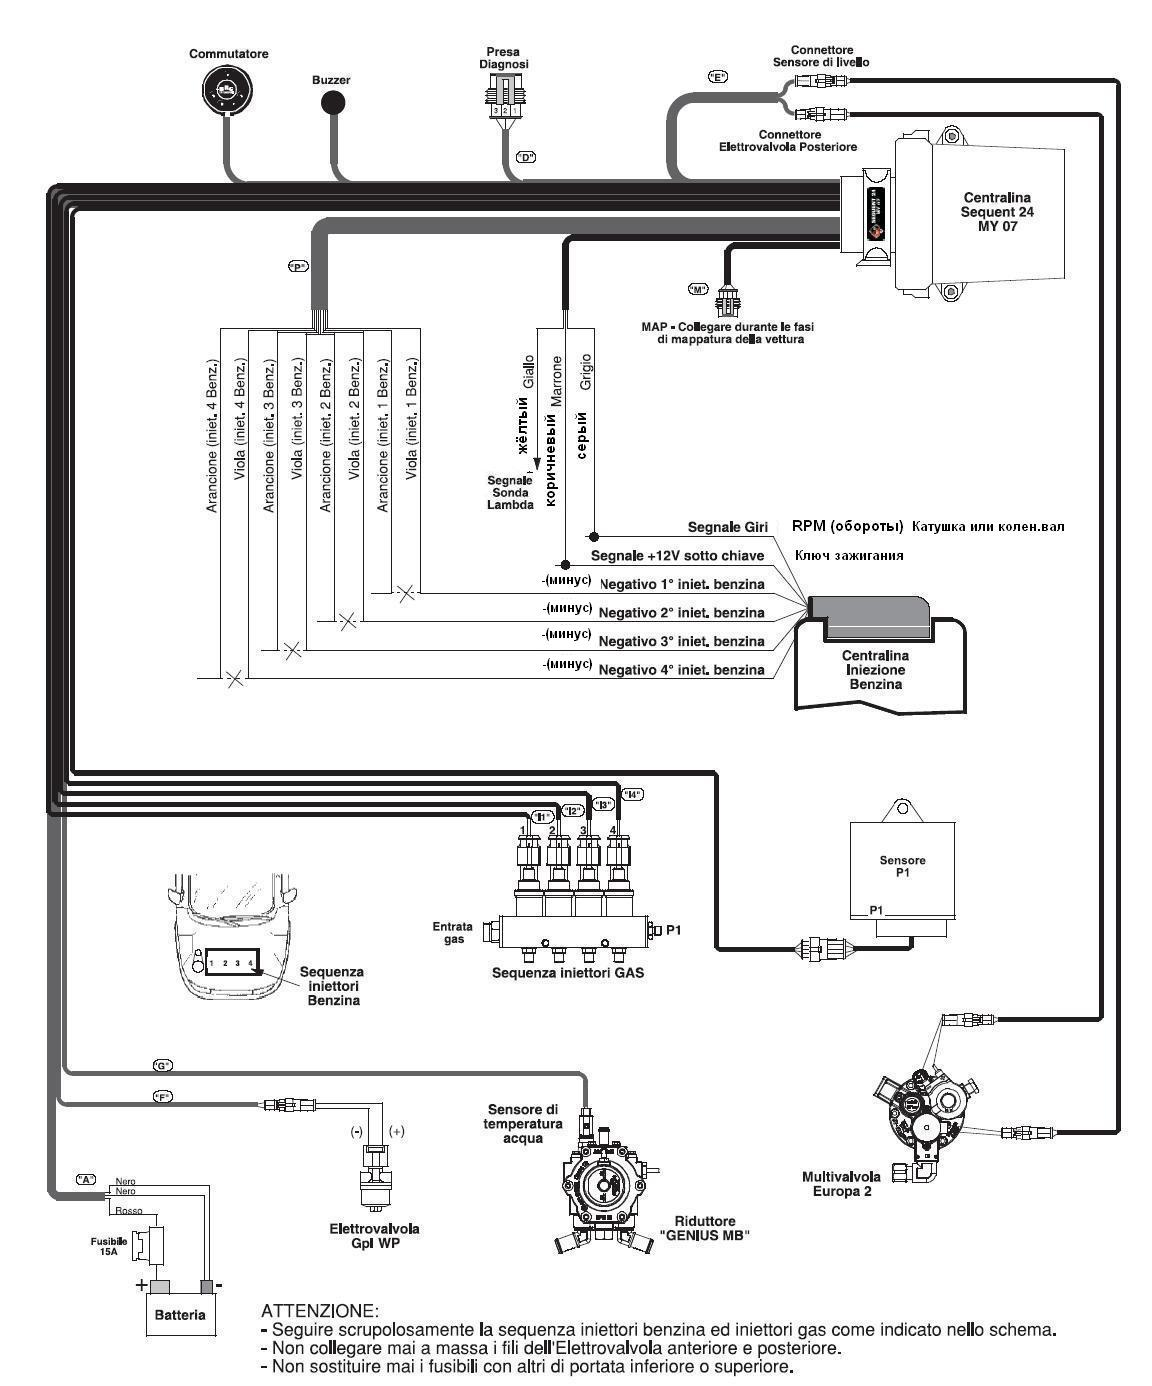 Zafira Ecu Wiring Diagram